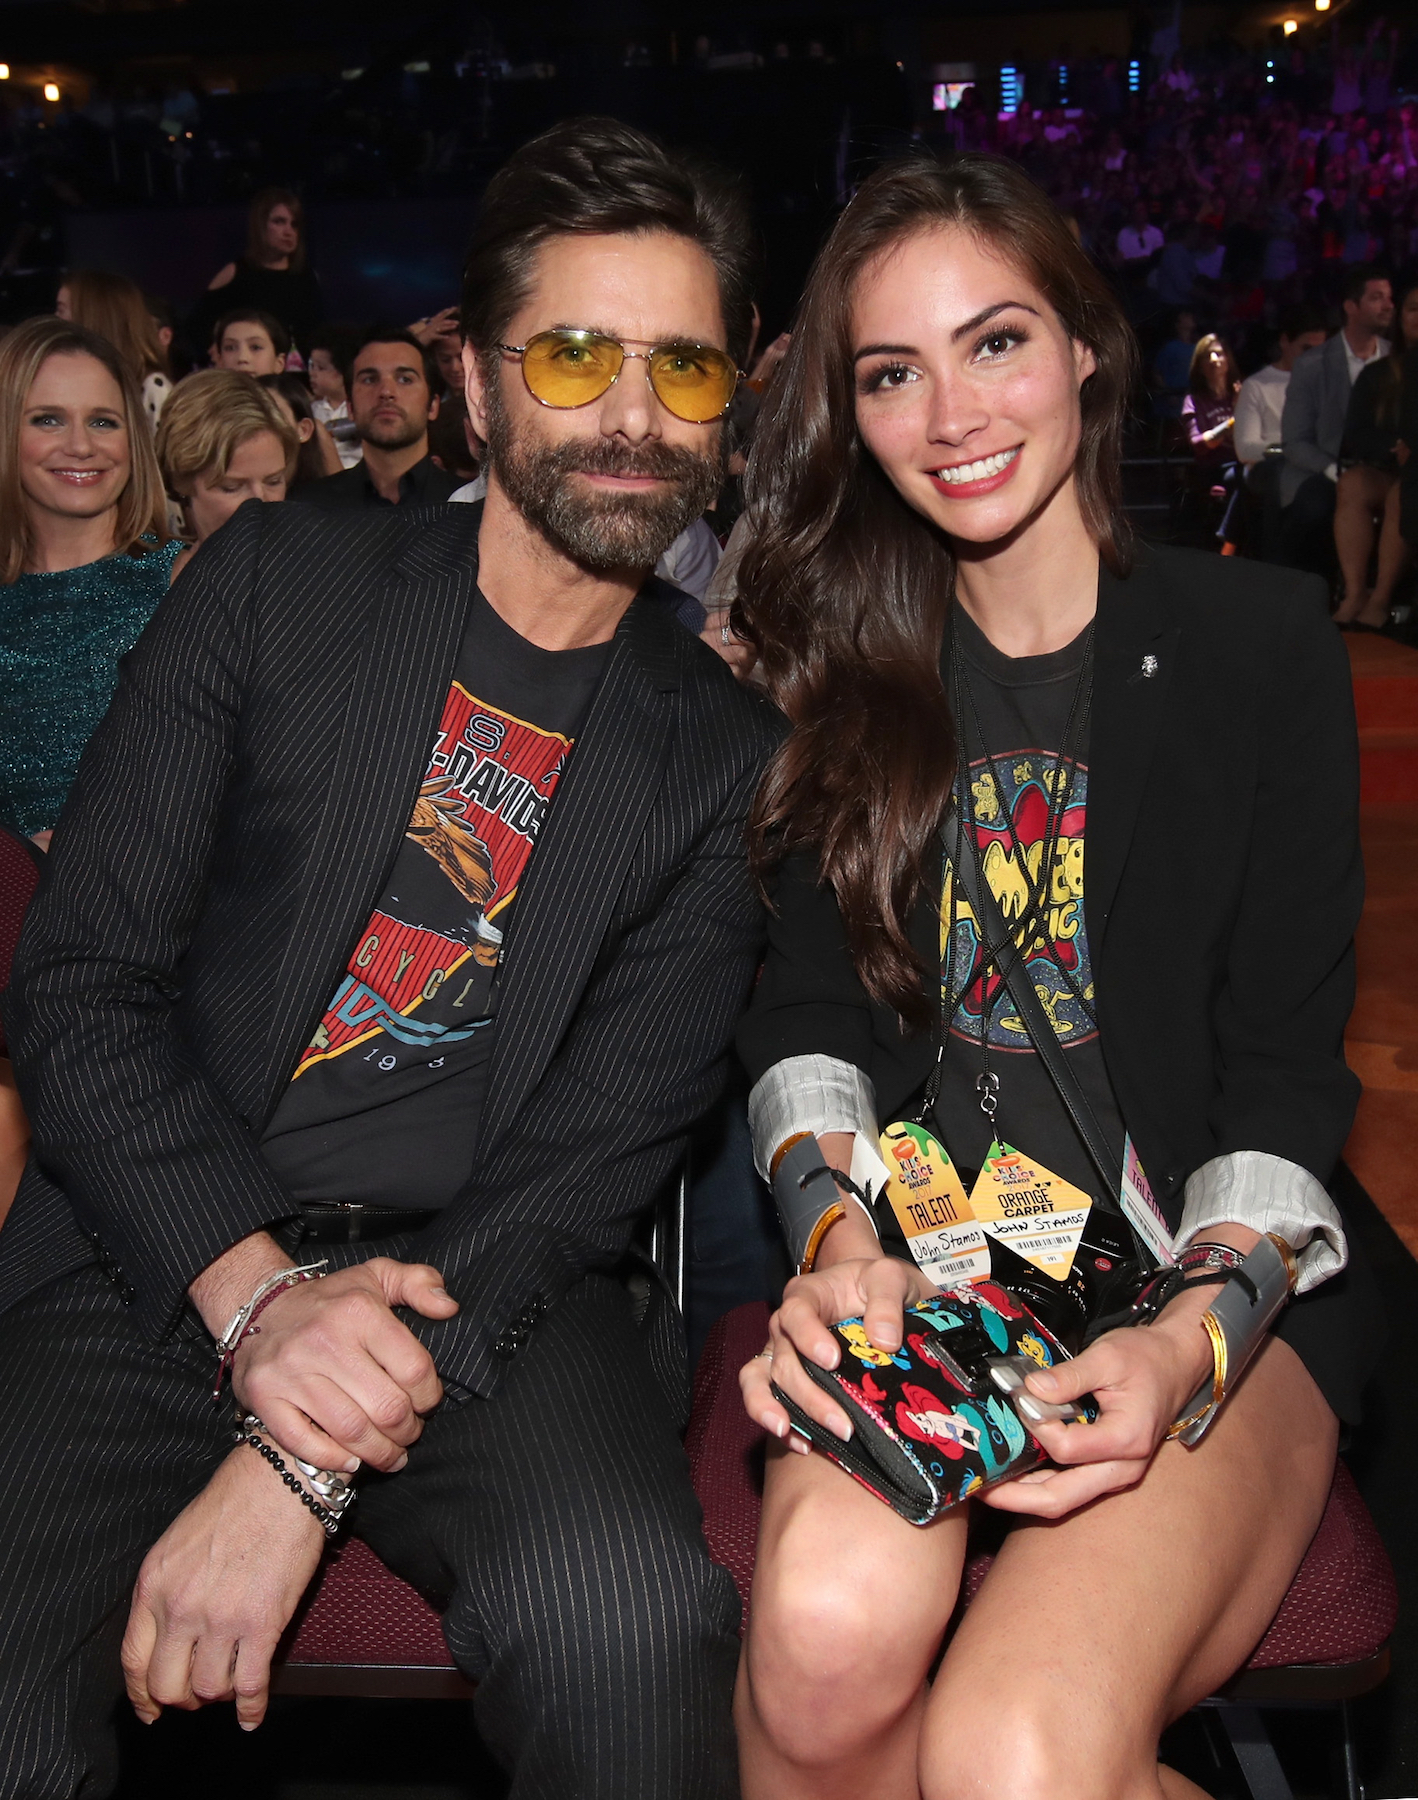 John Stamos gets engaged at Disneyland to longtime girlfriend Caitlyn McHugh